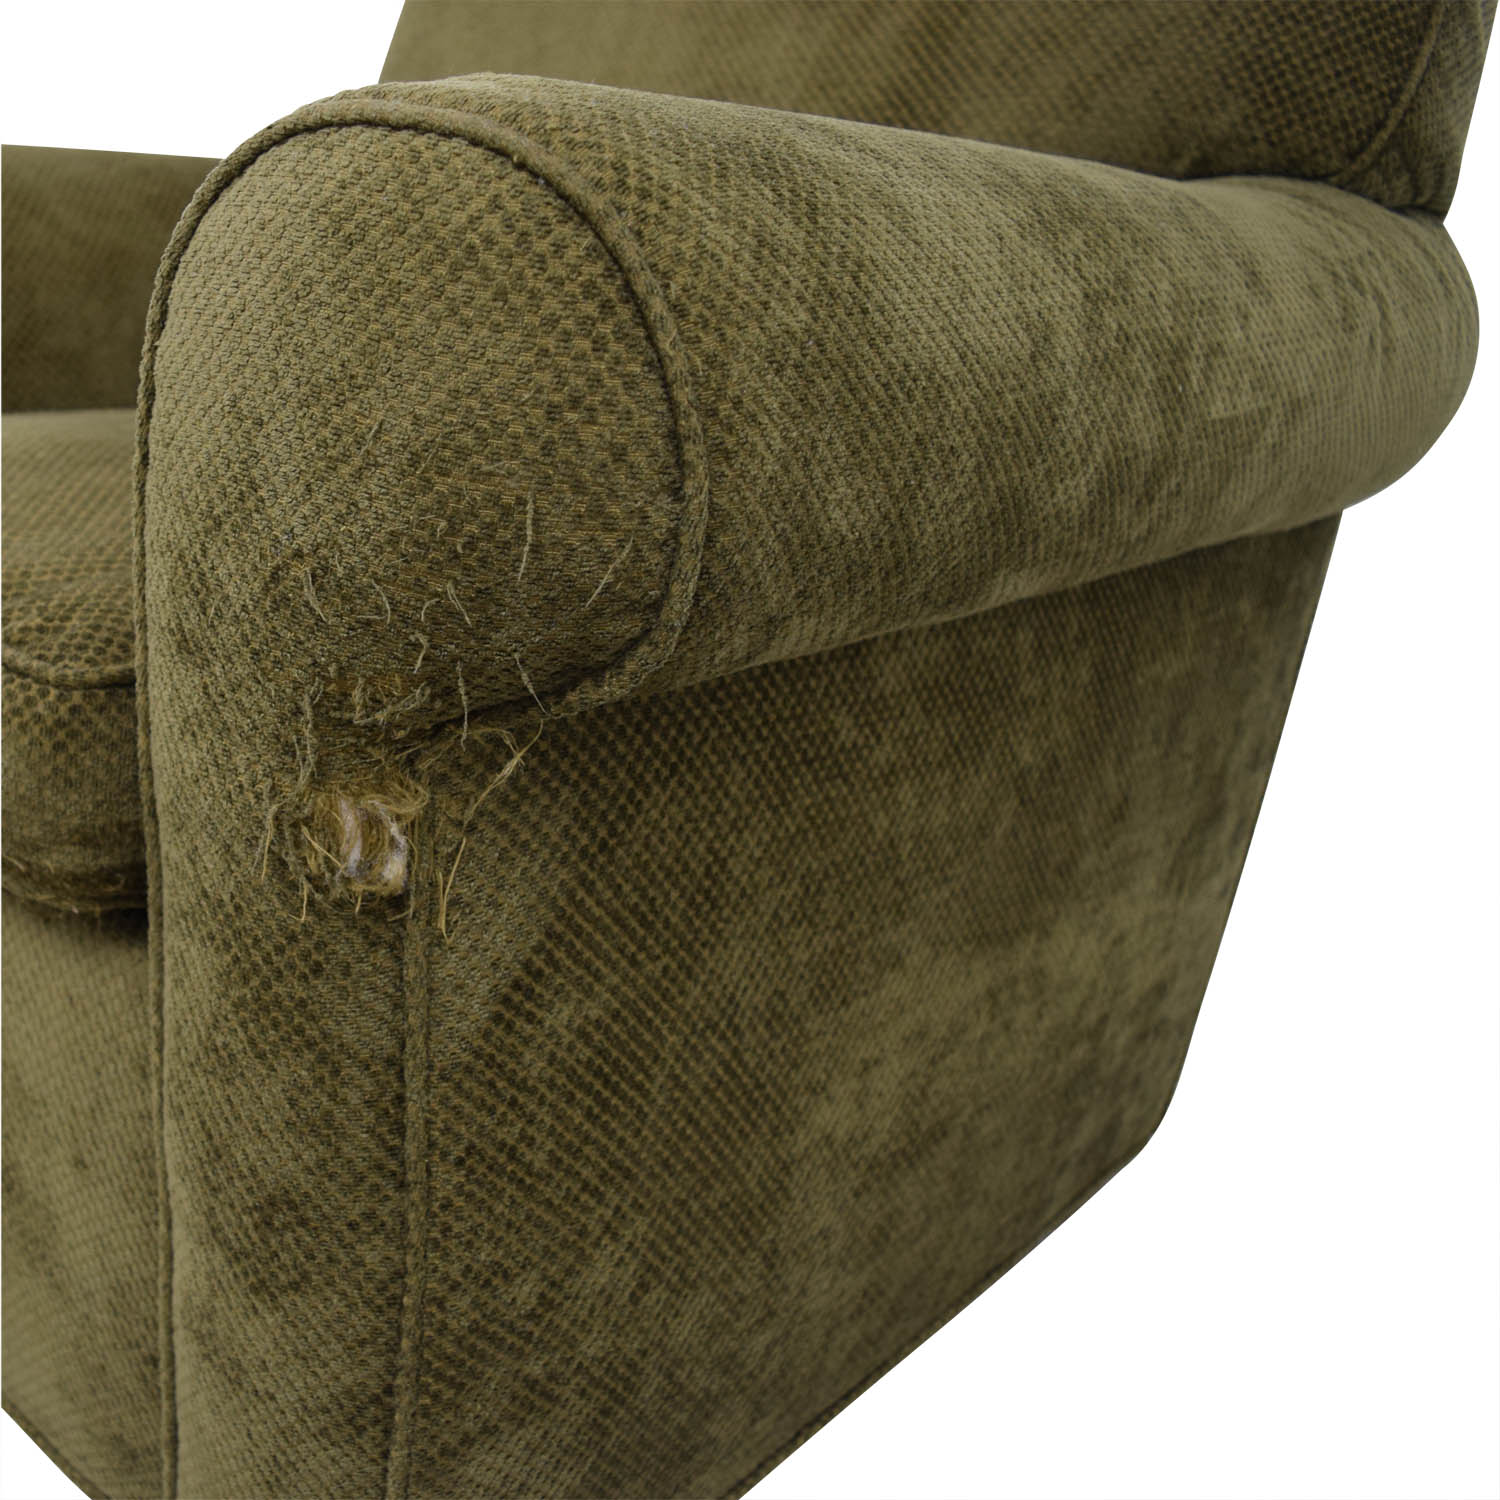 Large Olive Green Accent Chair nj